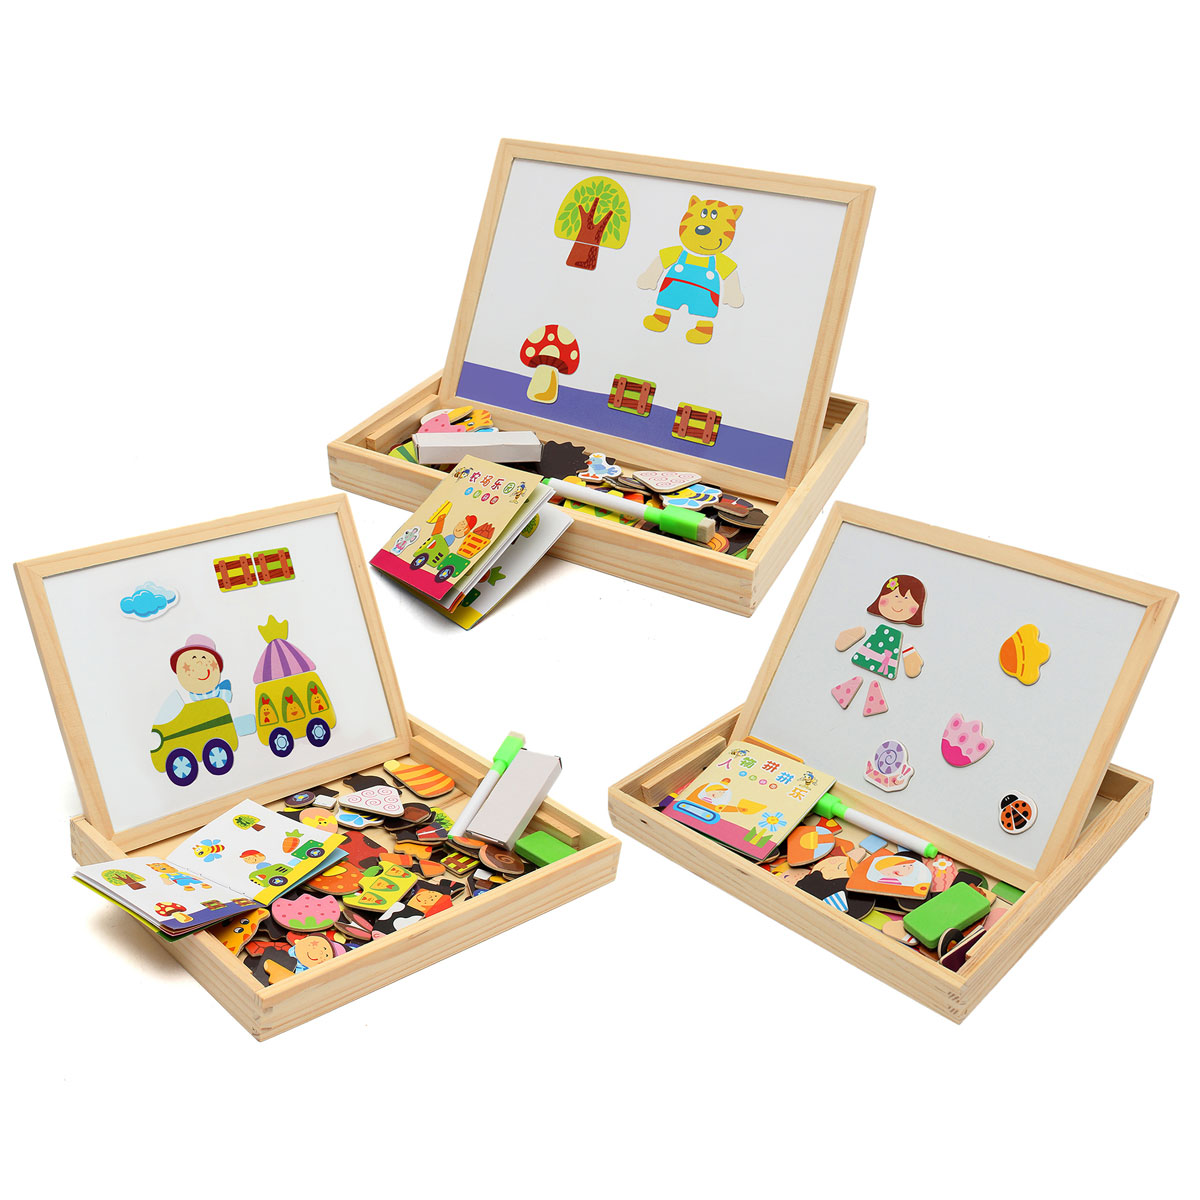 New Arrival Drawing Writing Board Magnetic Board Puzzle Double Easel Kid Wooden Toy Gift Children Intelligence Development Toy